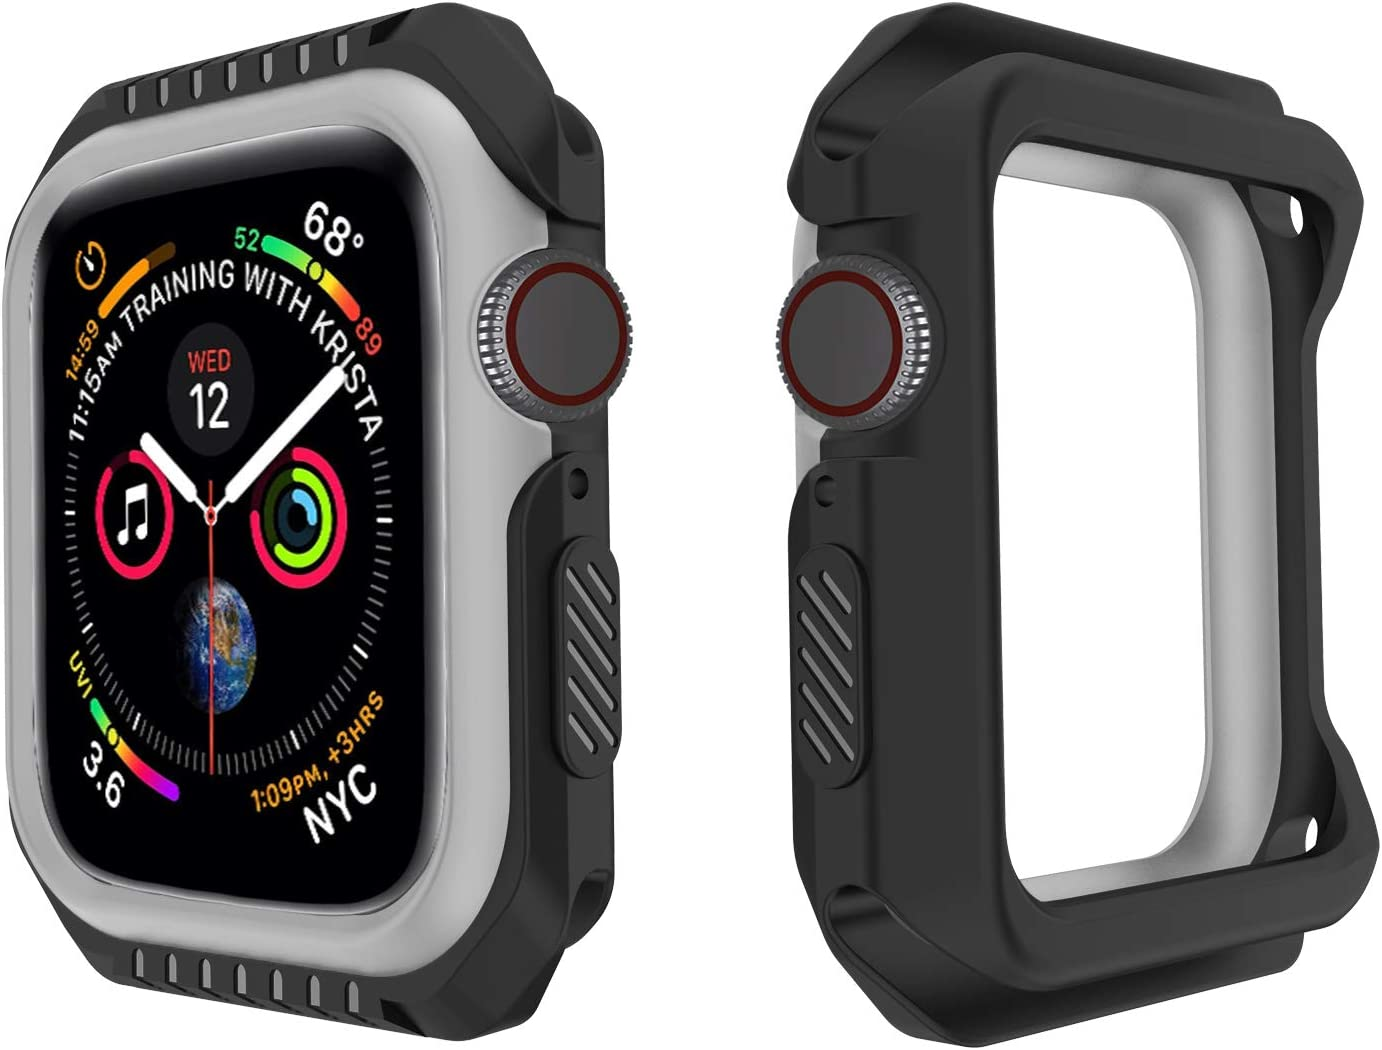 Kamon Watch Case Designed for Apple Watch Series 6, 5, 4, 3, 2, 1, Shatter-Resistant Bumper case for Apple watch 38mm 40mm 42mm 44mm (Black Gray, 44mm)